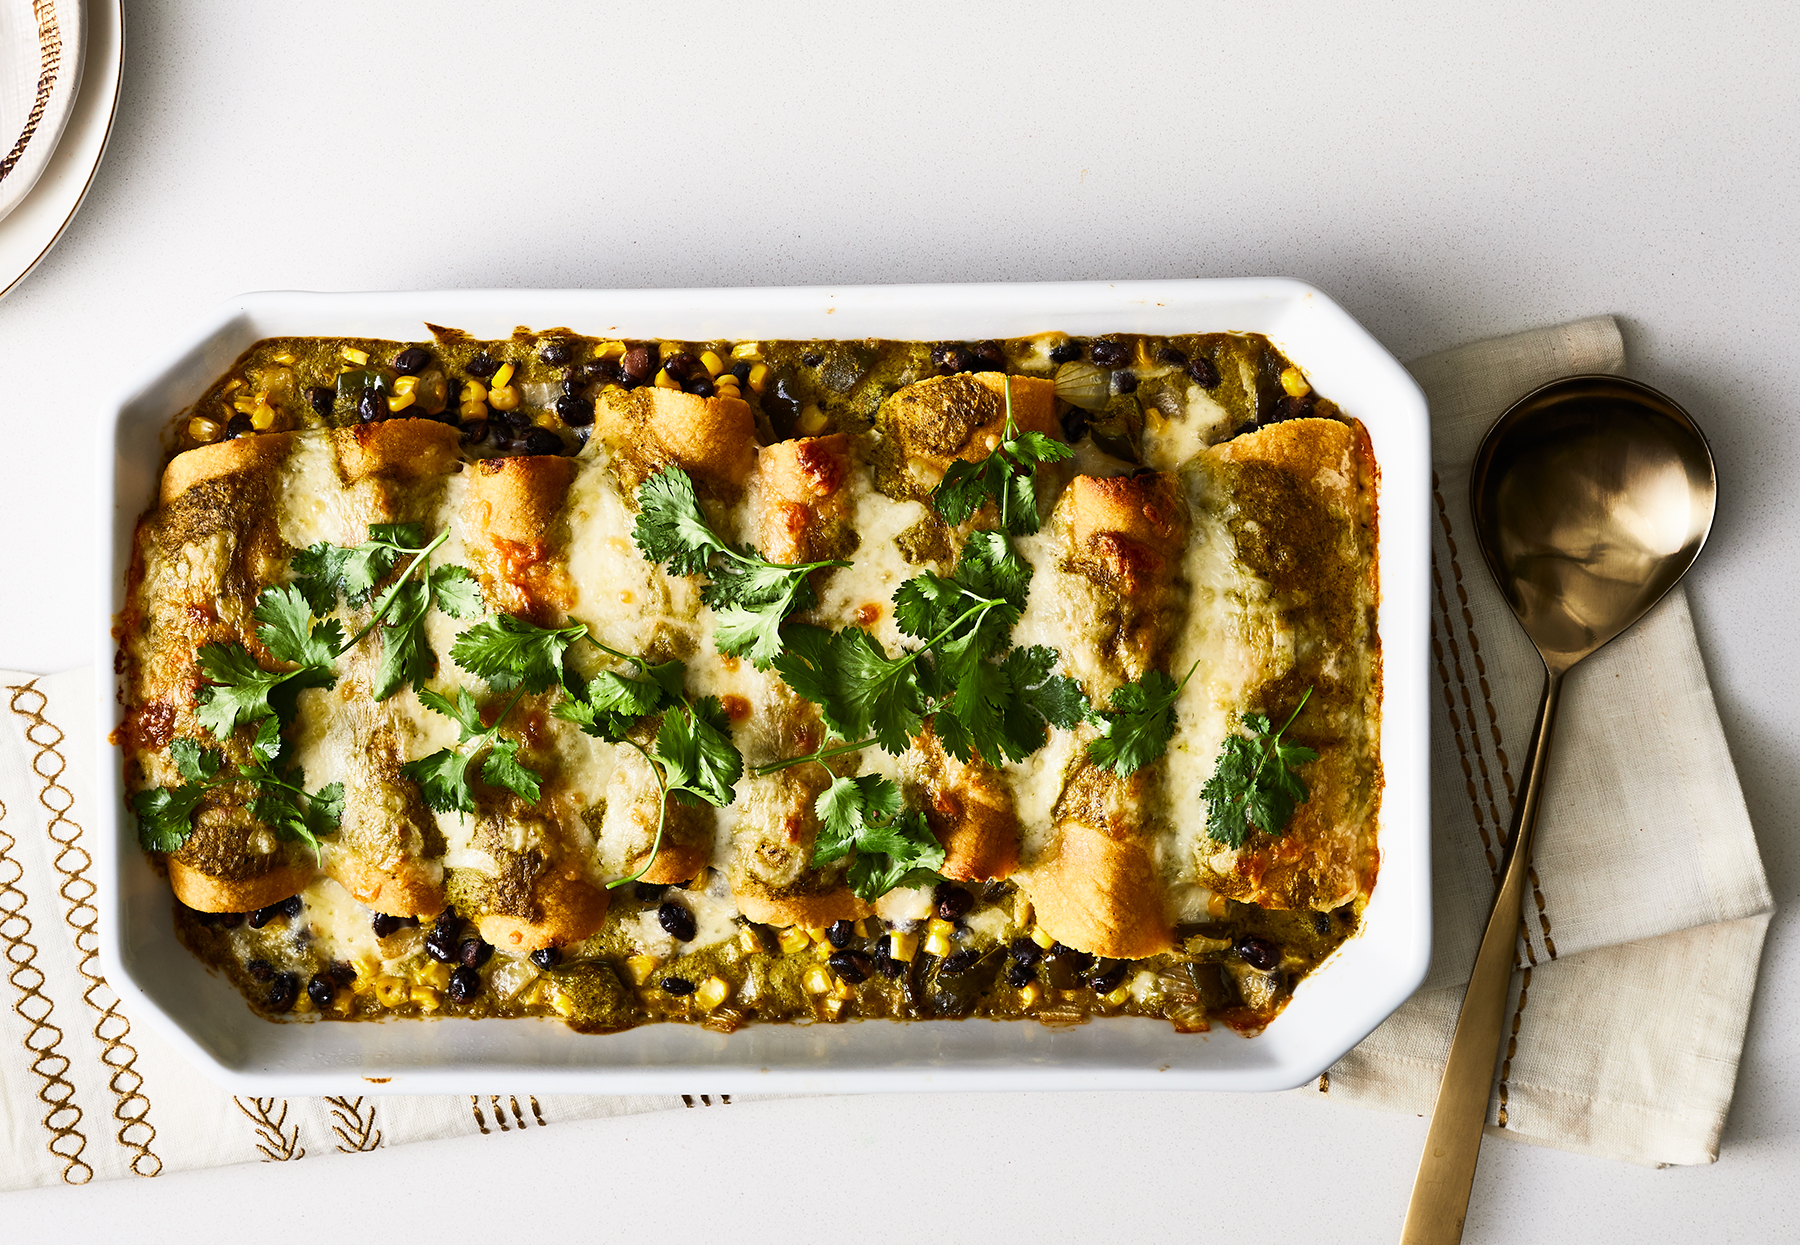 Green Chile Enchiladas Recipe